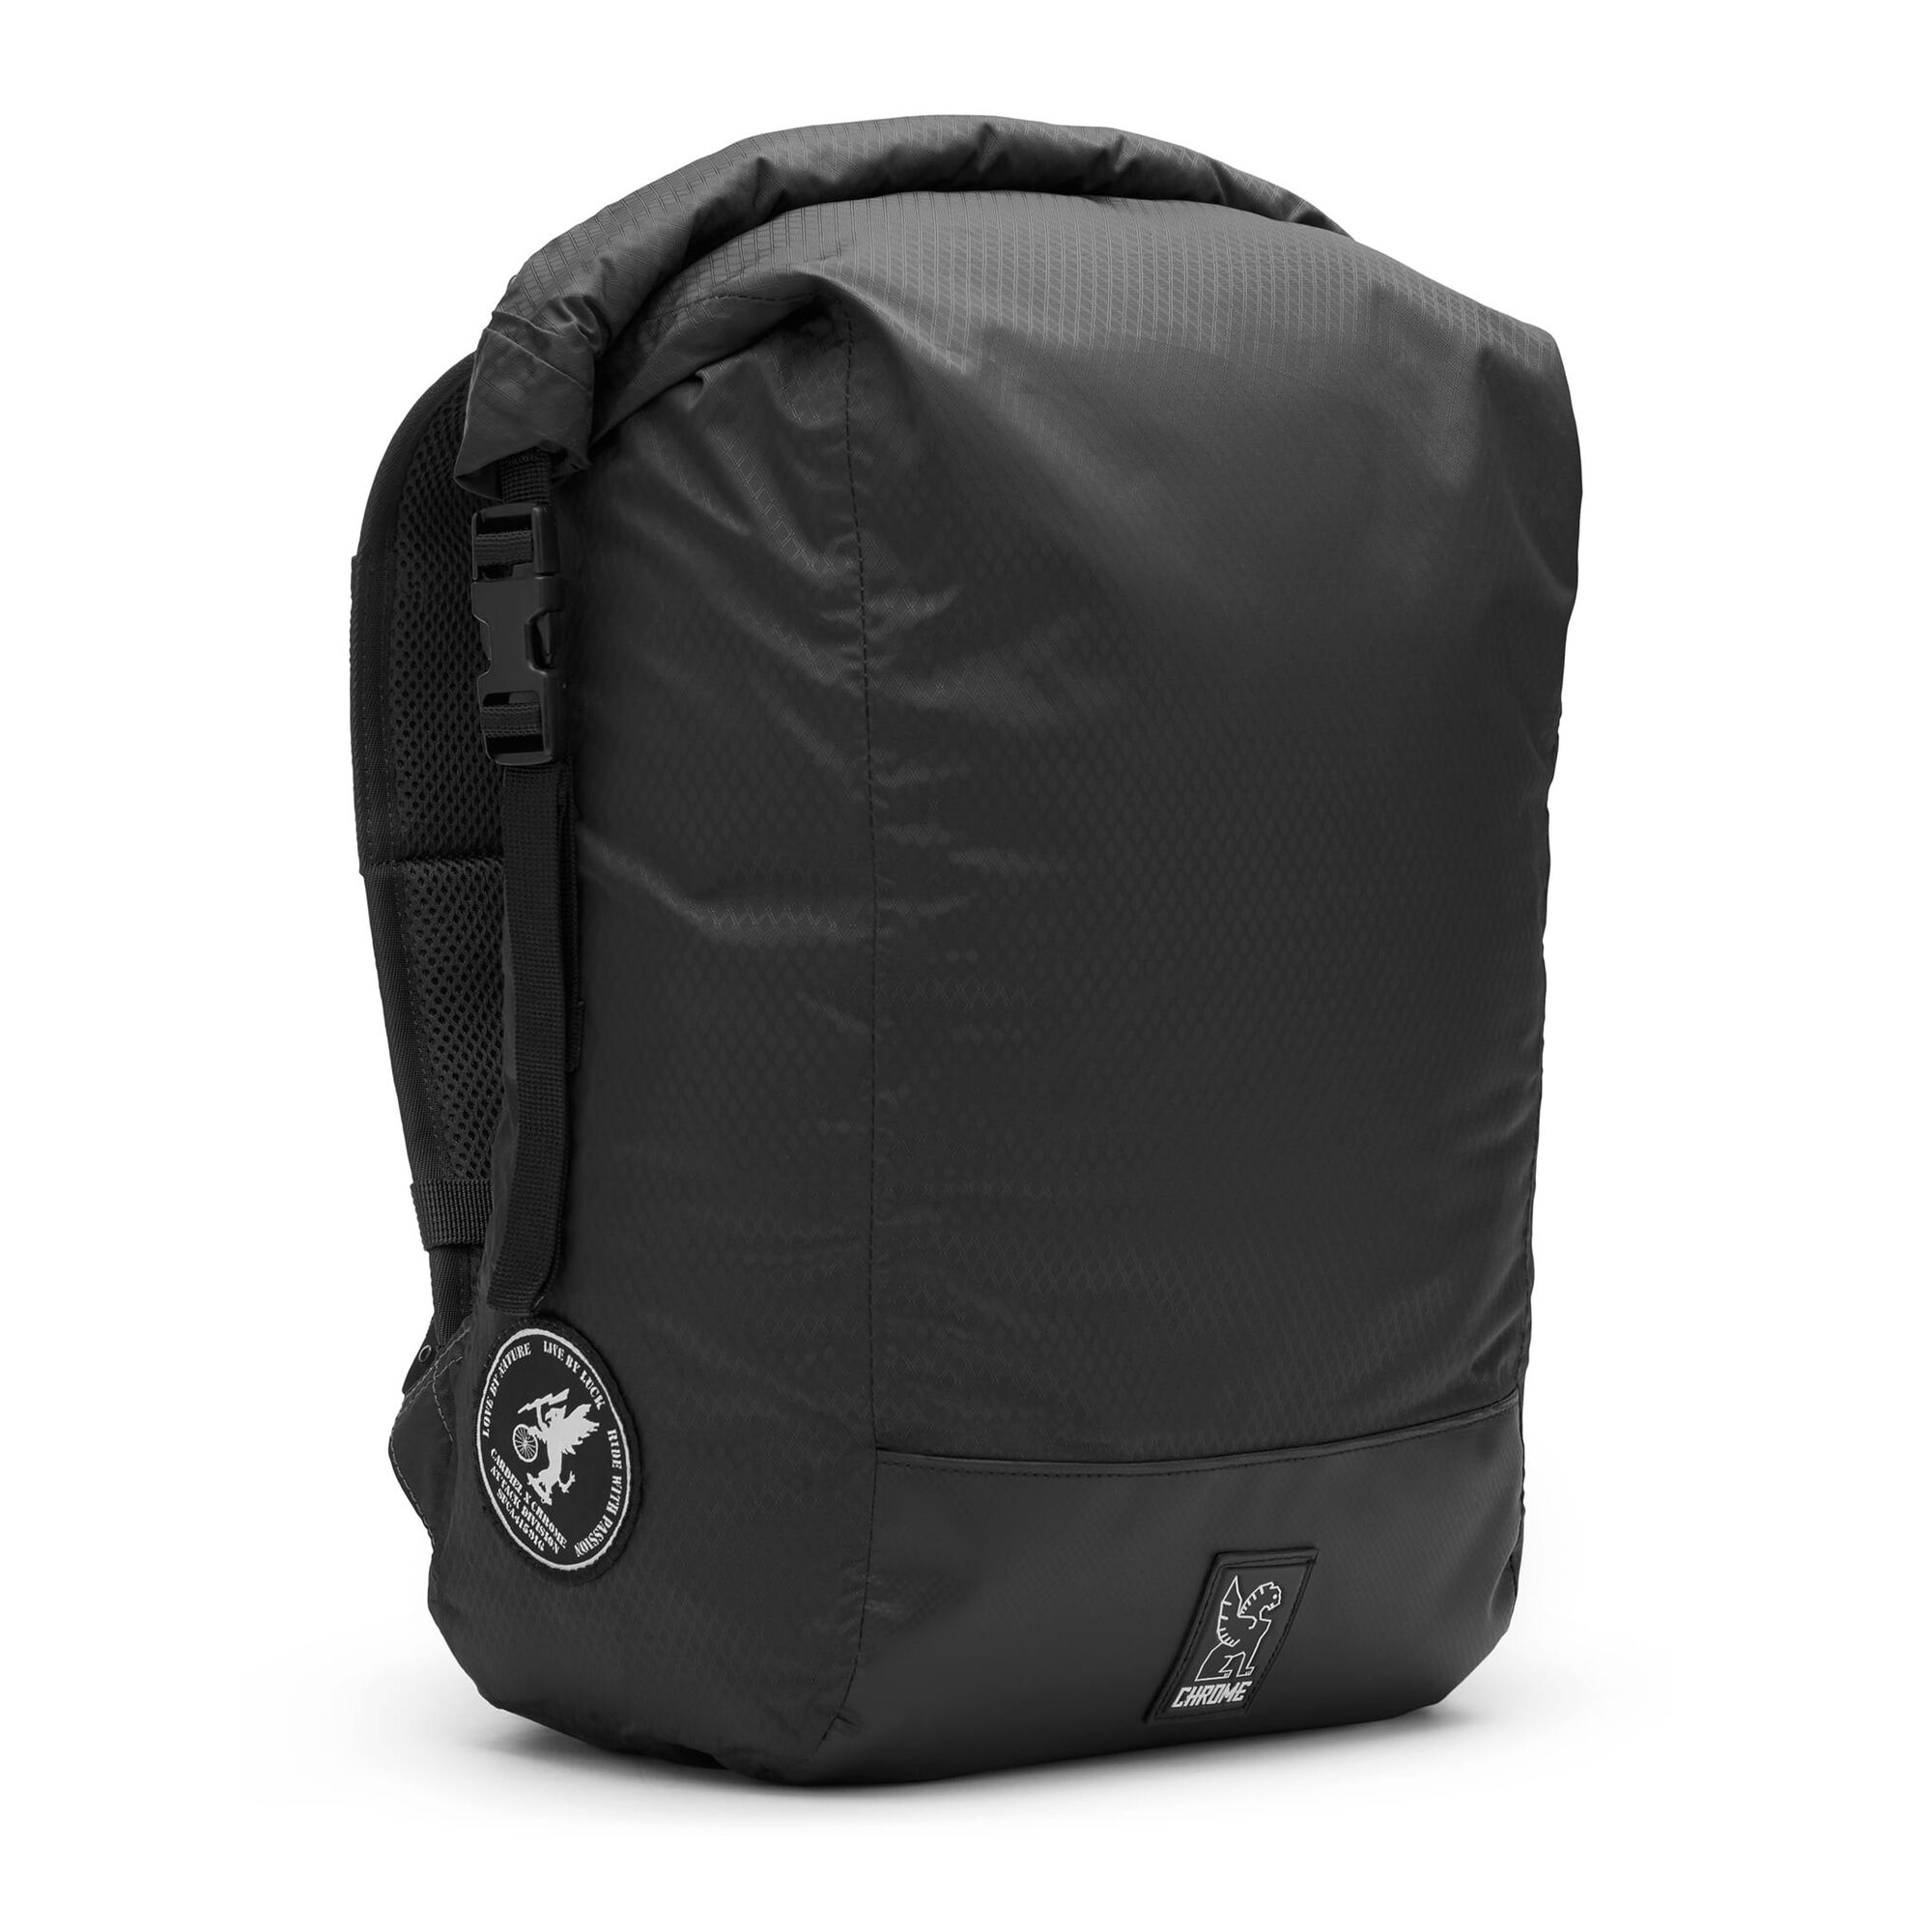 0428a37f20 The Cardiel Orp Backpack - Fits laptops up to 13